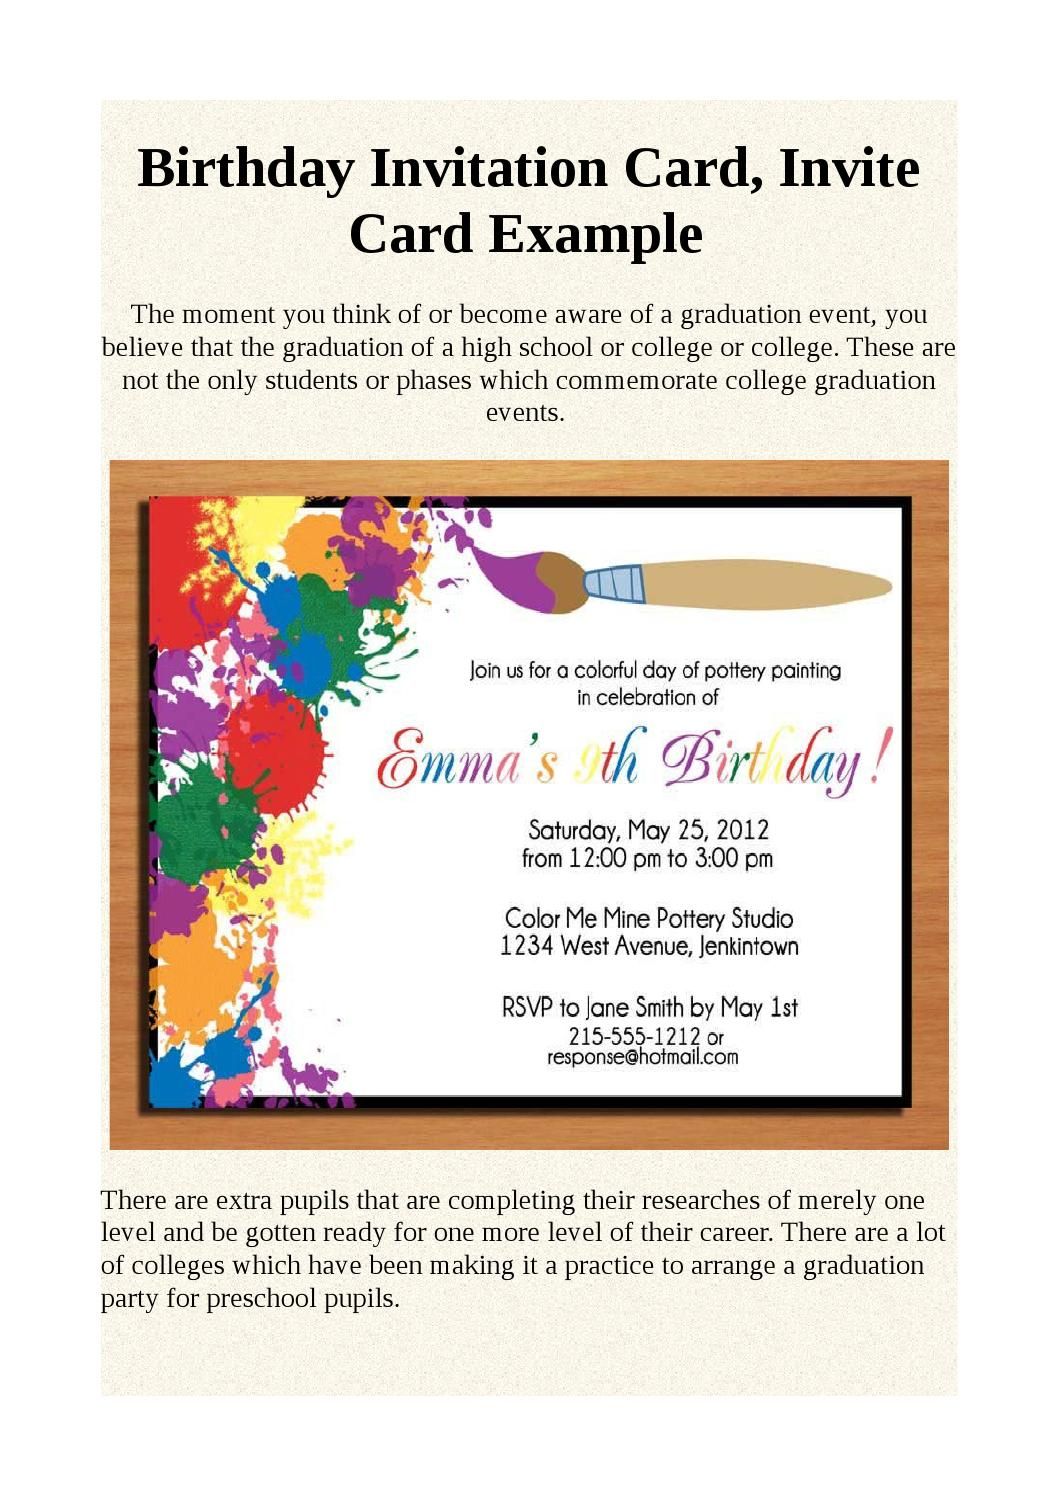 Fabulous Birthday Invitation Card Invite Card Example By Shonivyan Issuu Funny Birthday Cards Online Elaedamsfinfo